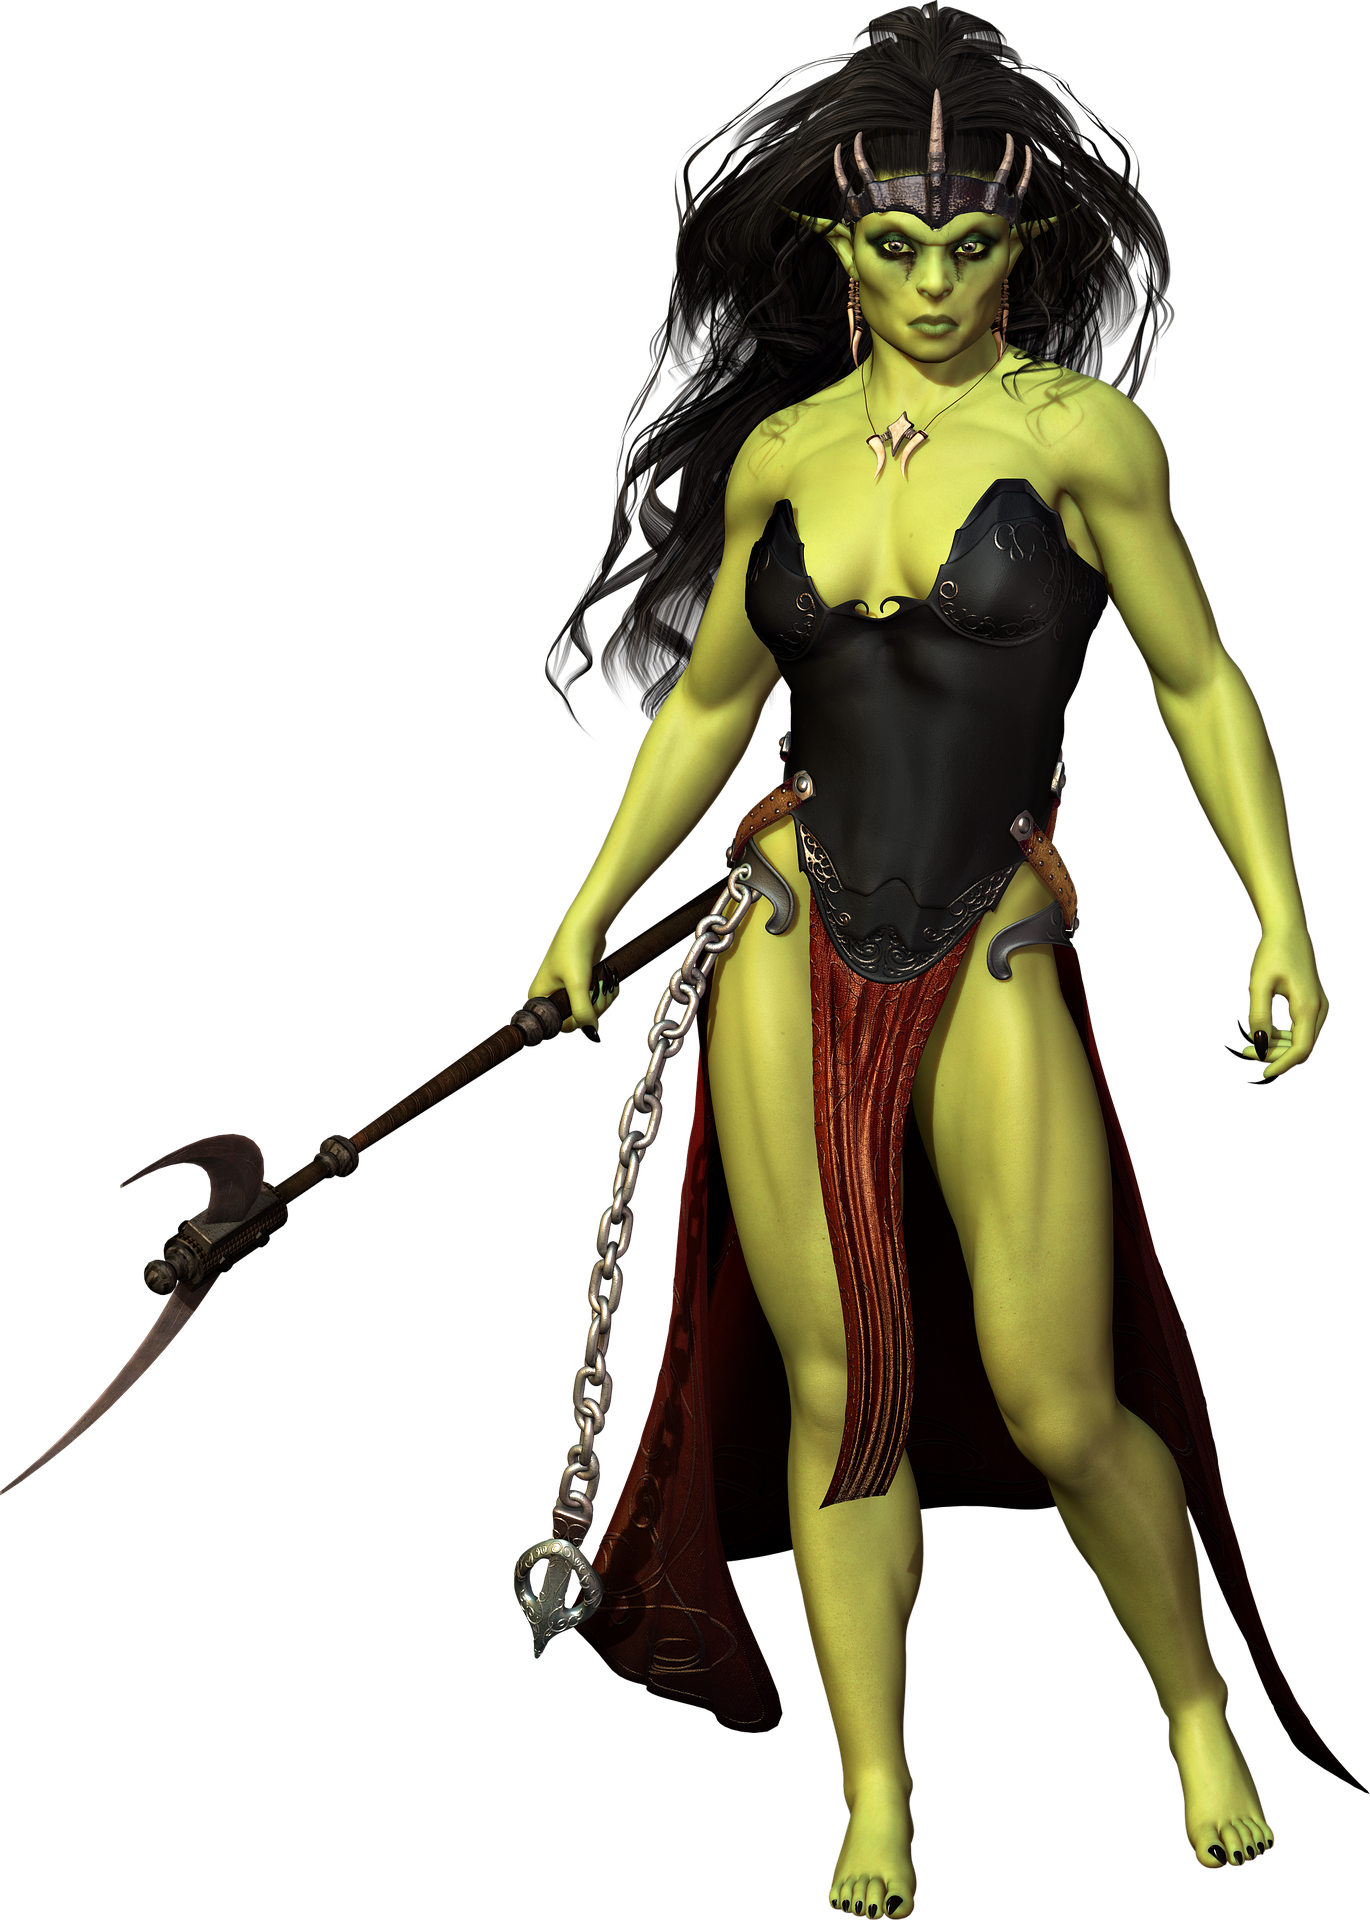 orc-3194836_1920.png